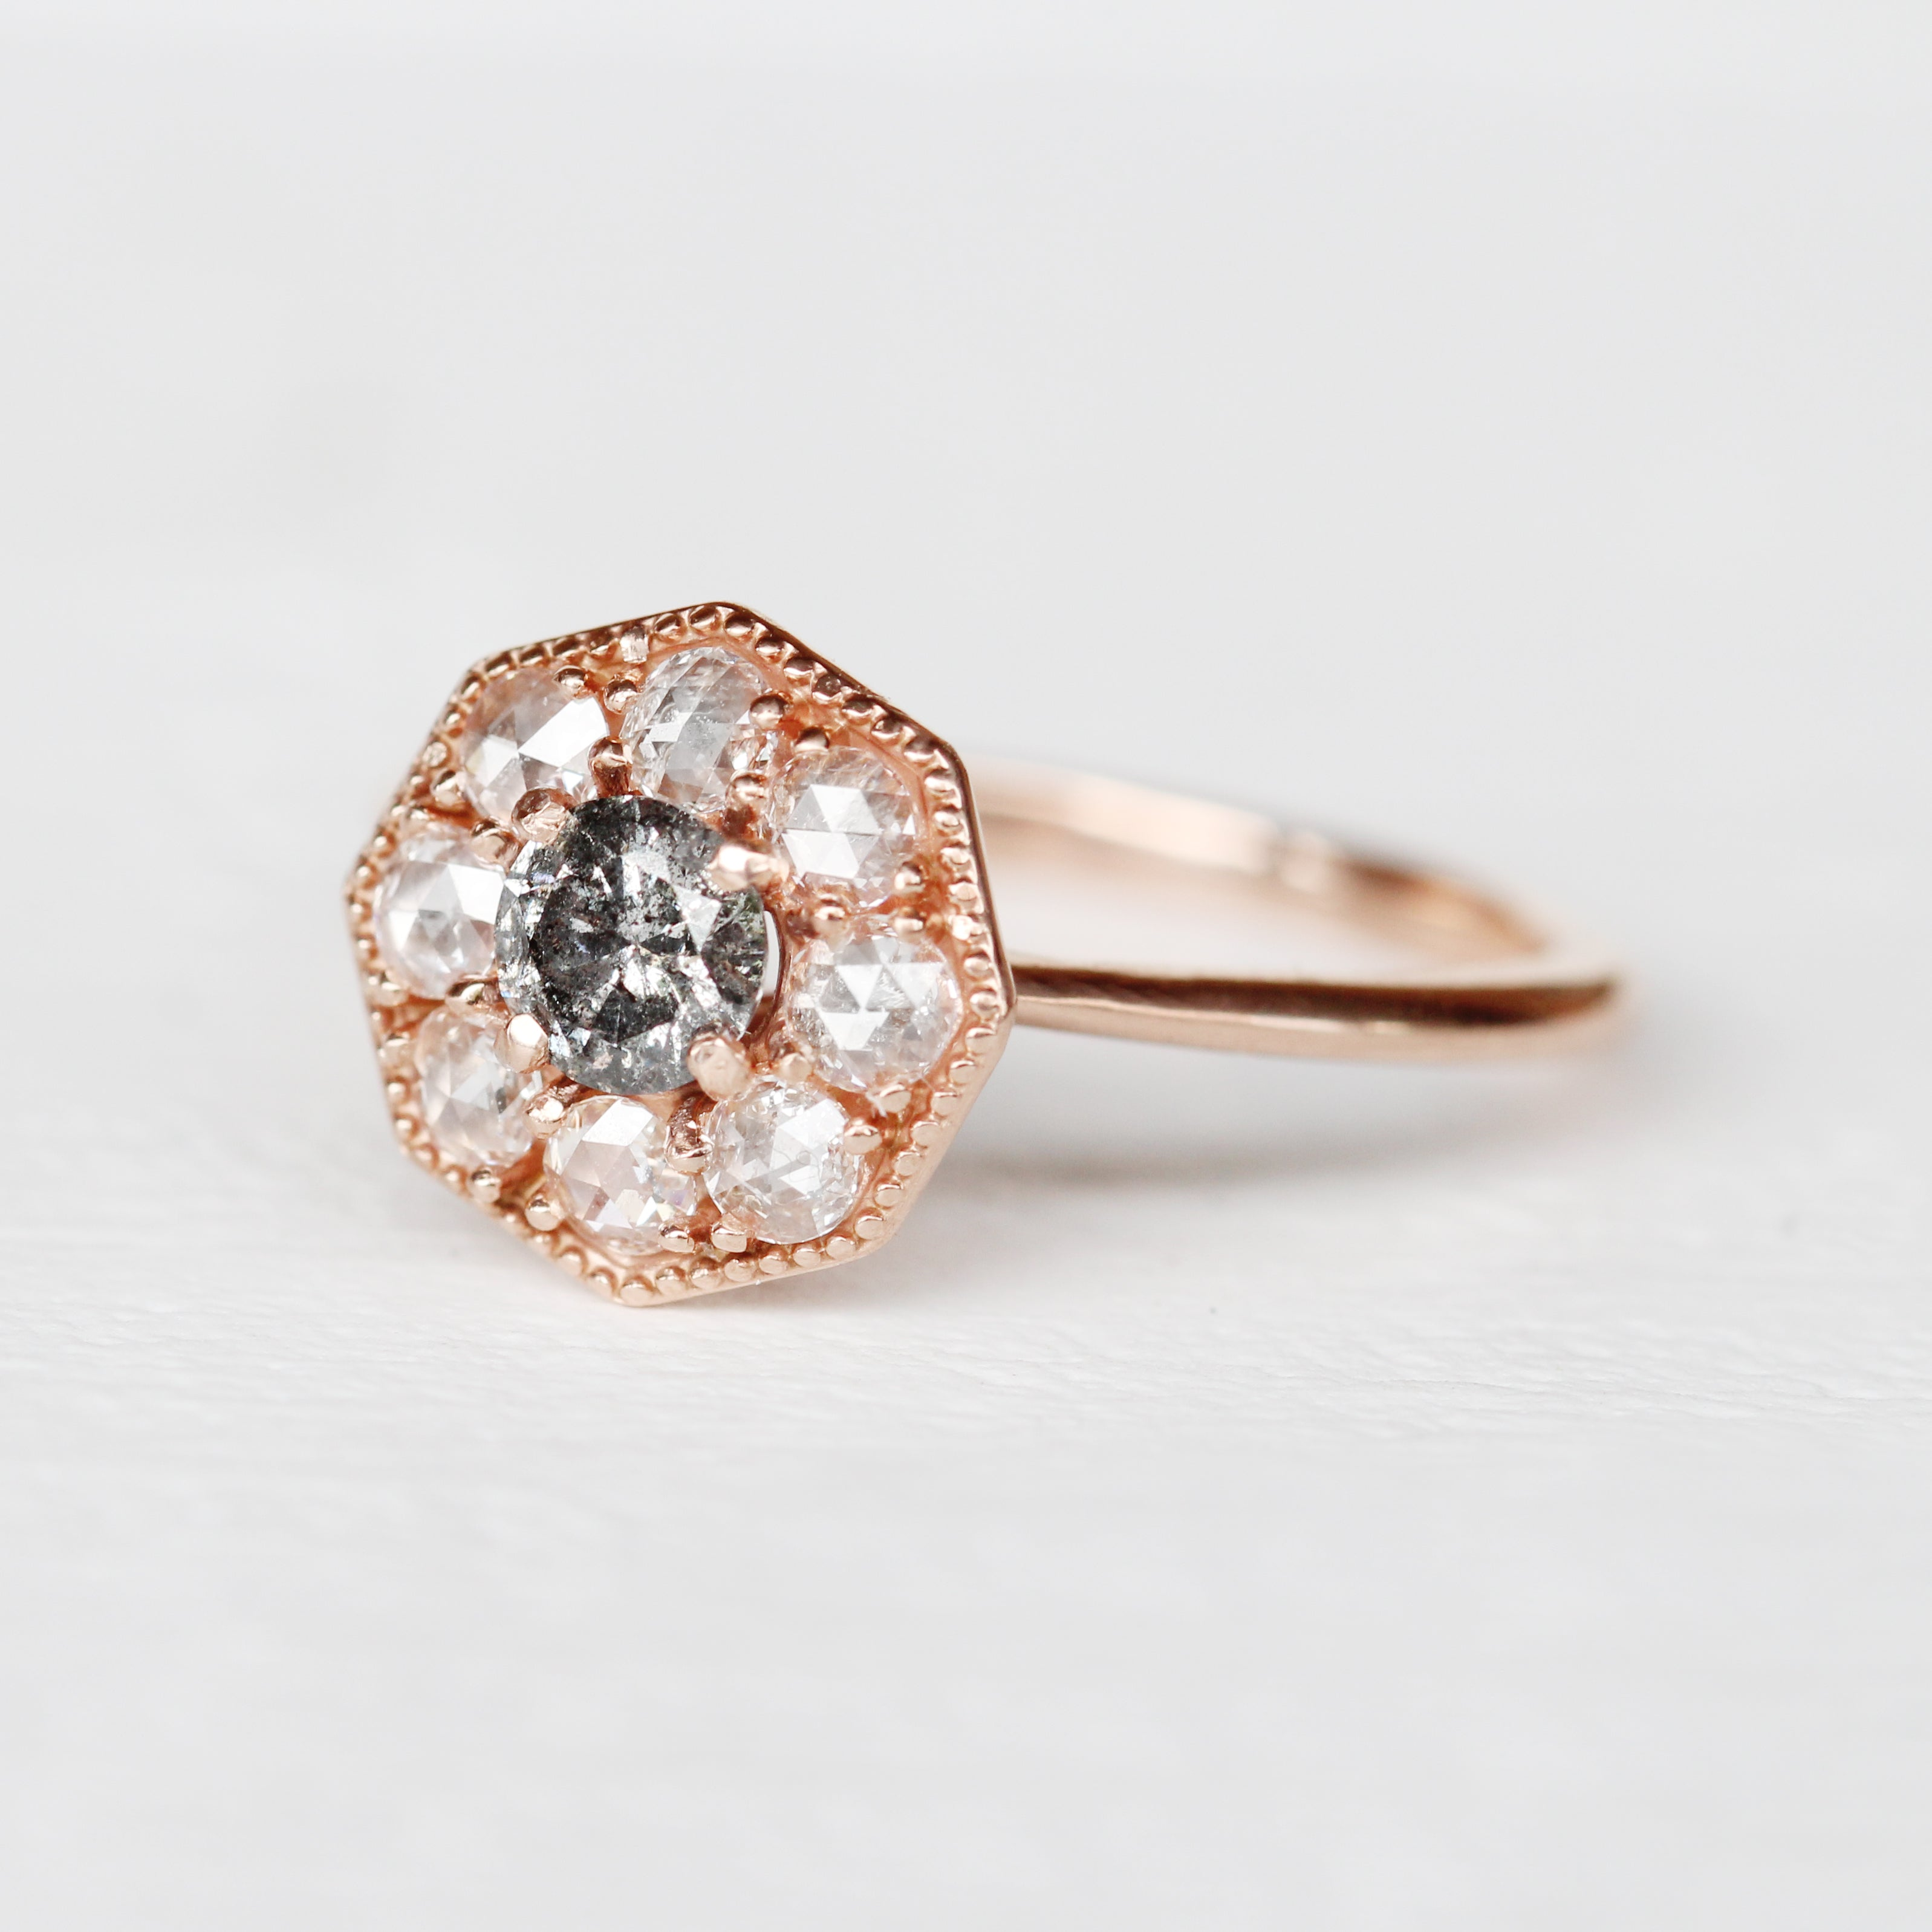 Ethel Ring with a Celestial Diamond in Your Choice of 14k Gold - Made to Order - Midwinter Co. Alternative Bridal Rings and Modern Fine Jewelry